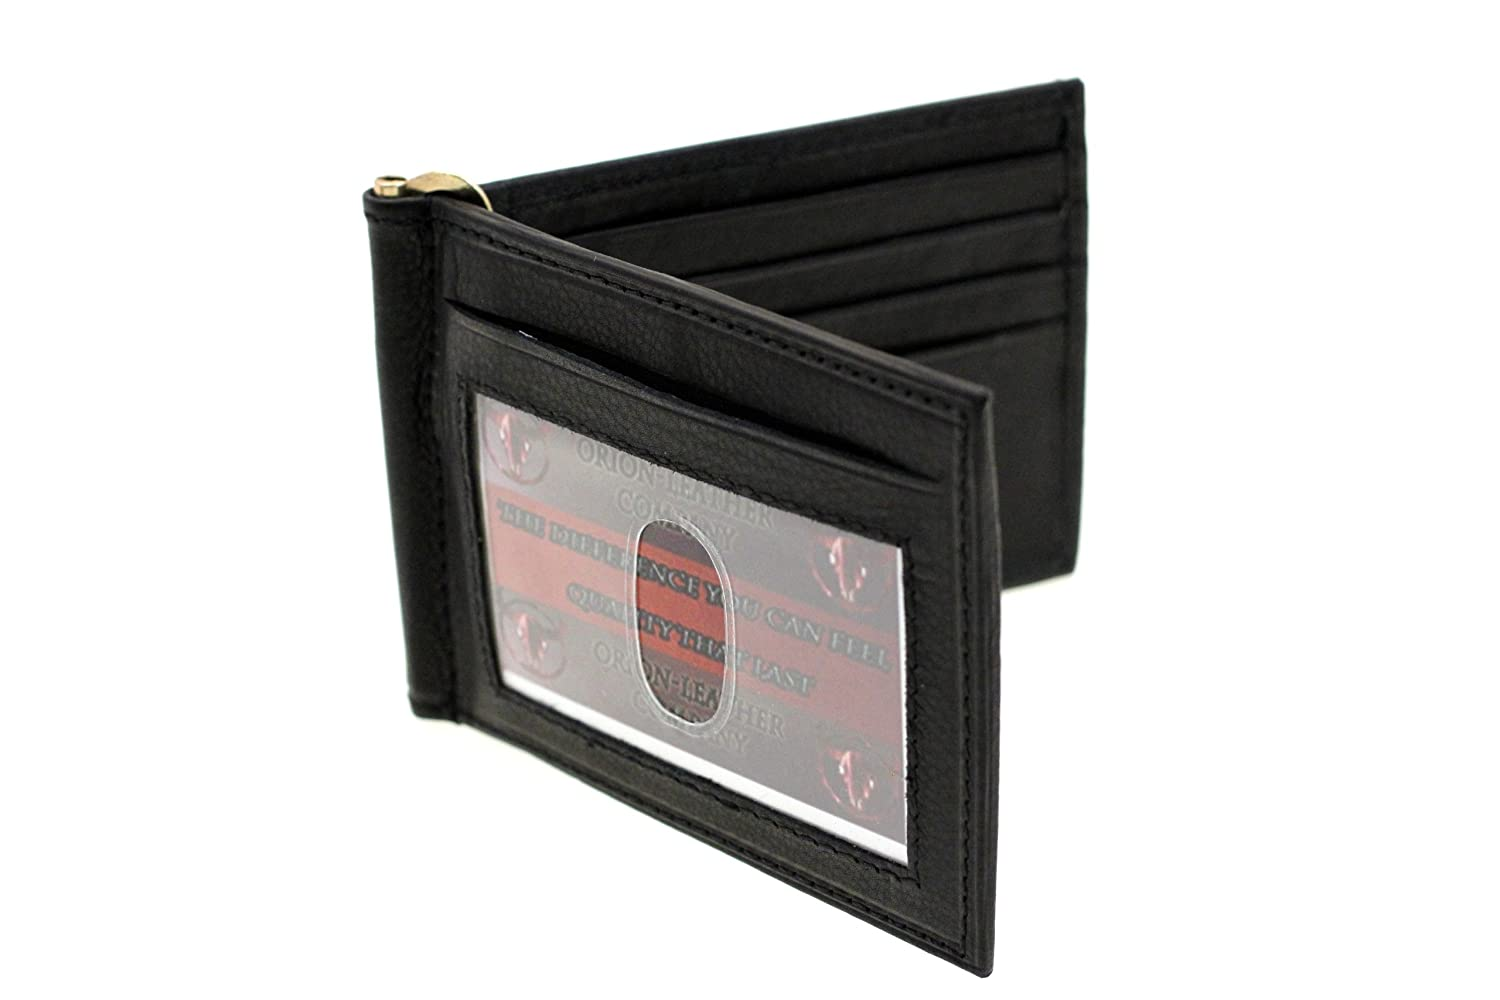 Paul /& Taylor Mens Genuine Leather Front Pocket Money Clip With ID Slot Black